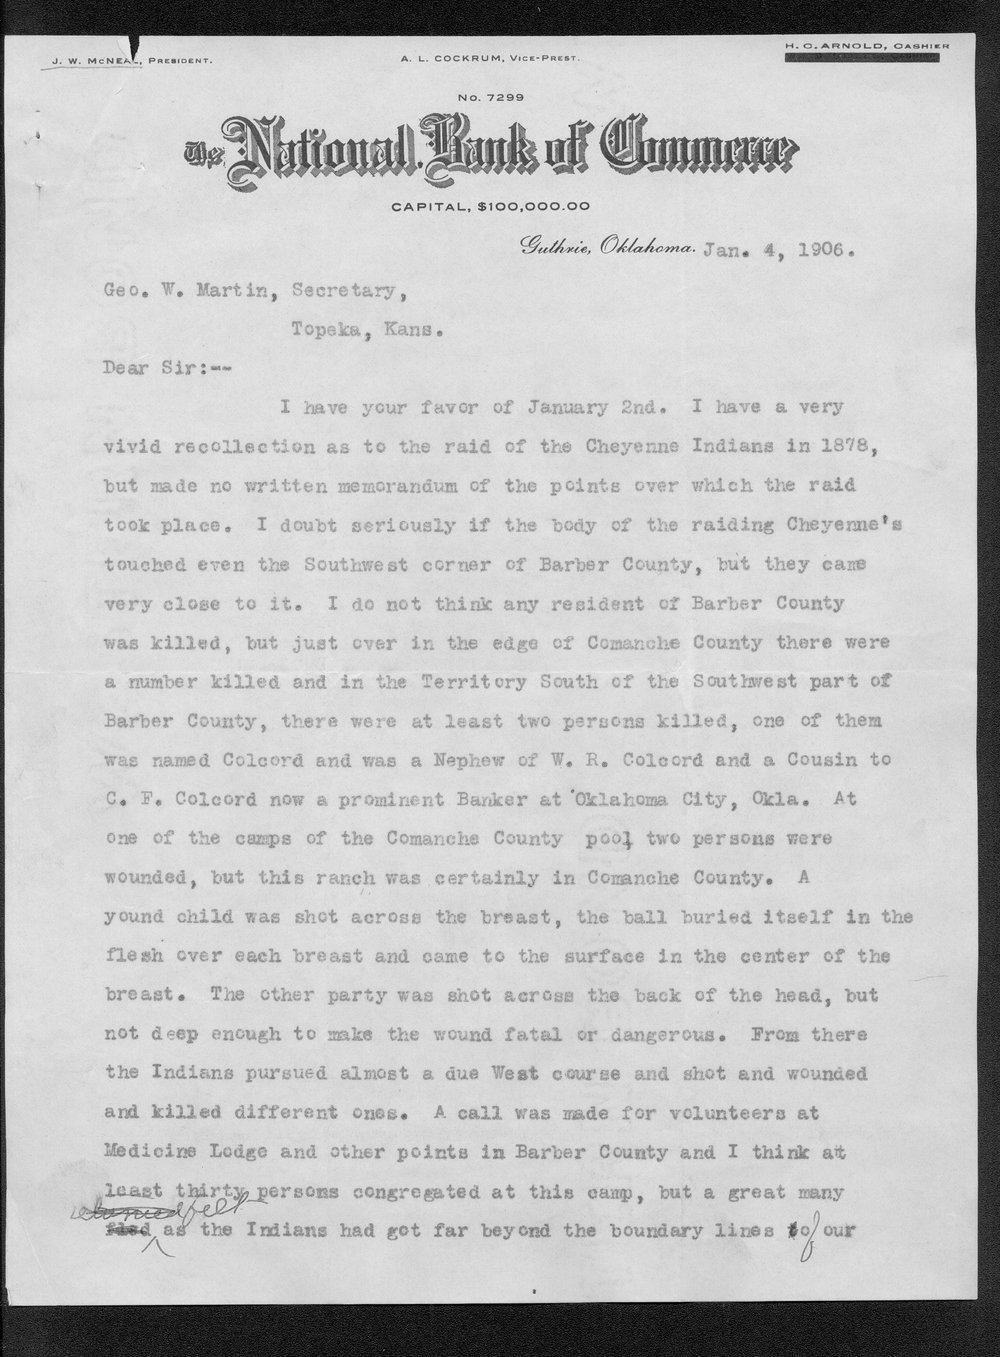 George Martin correspondence on the 1878 route of the Cheyenne Indians through Kansas - 5